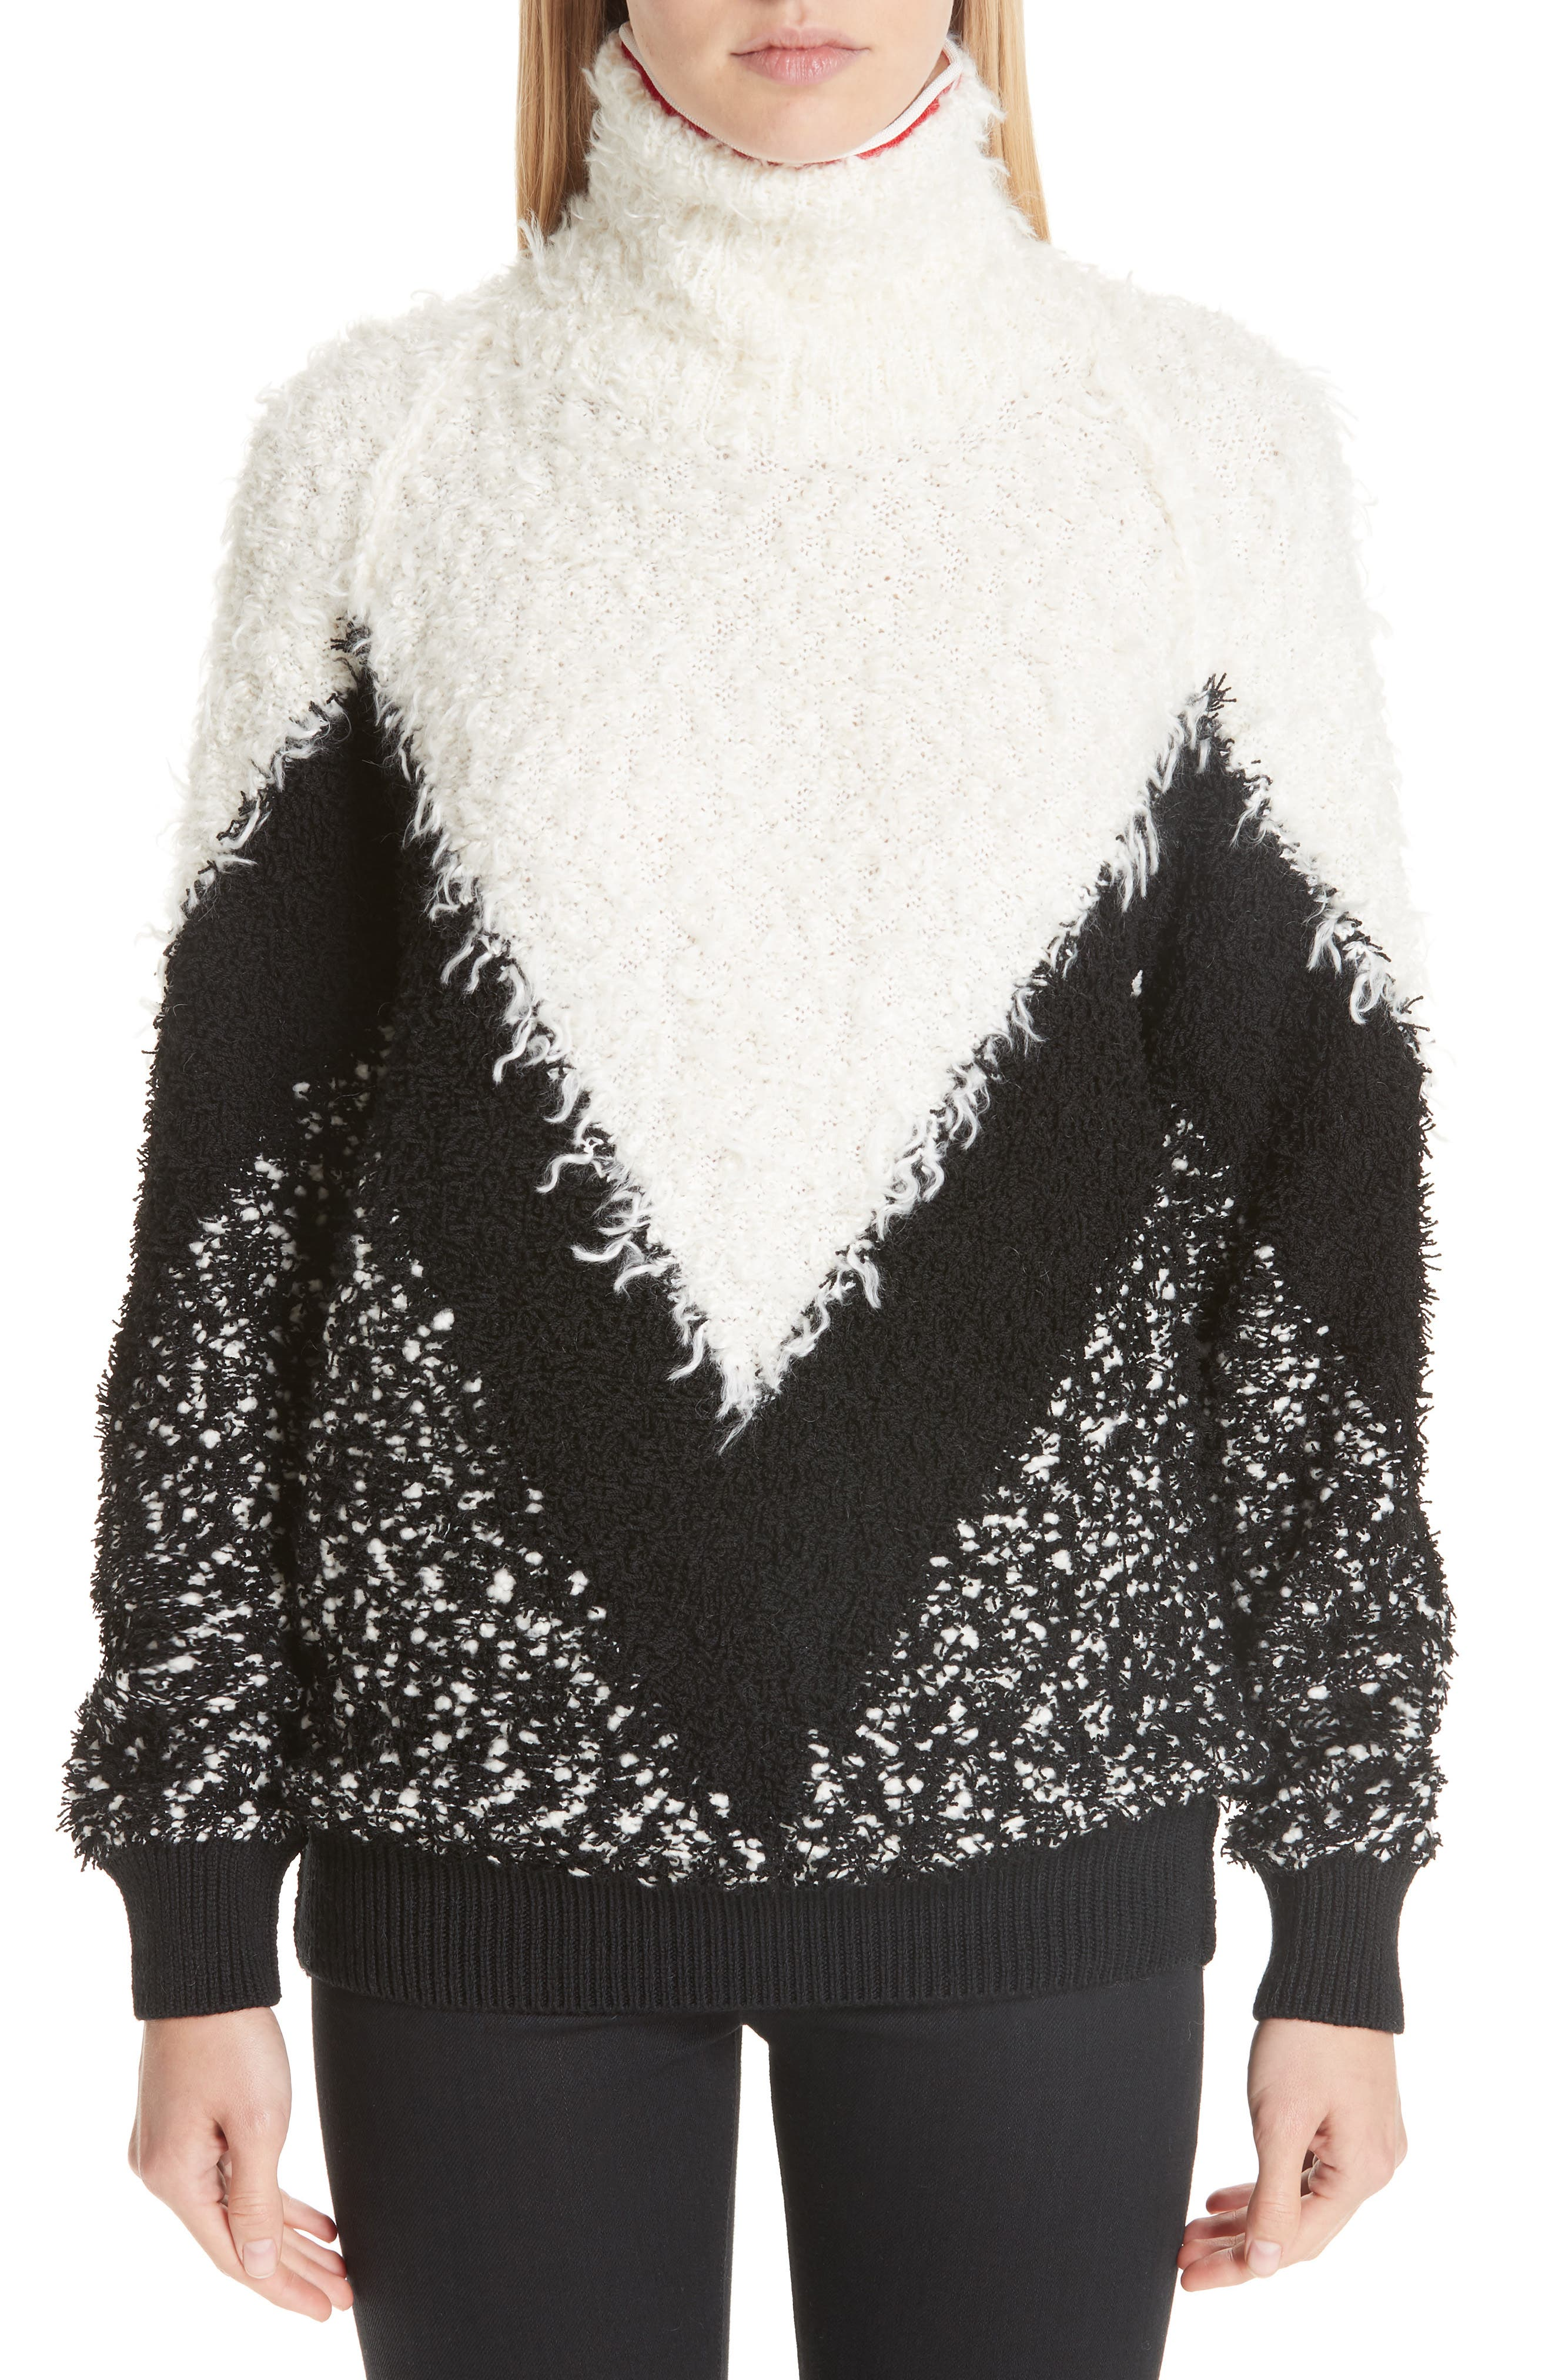 Intarsia Chevron Sweater,                             Main thumbnail 1, color,                             BLACK/ GREY/ WHITE